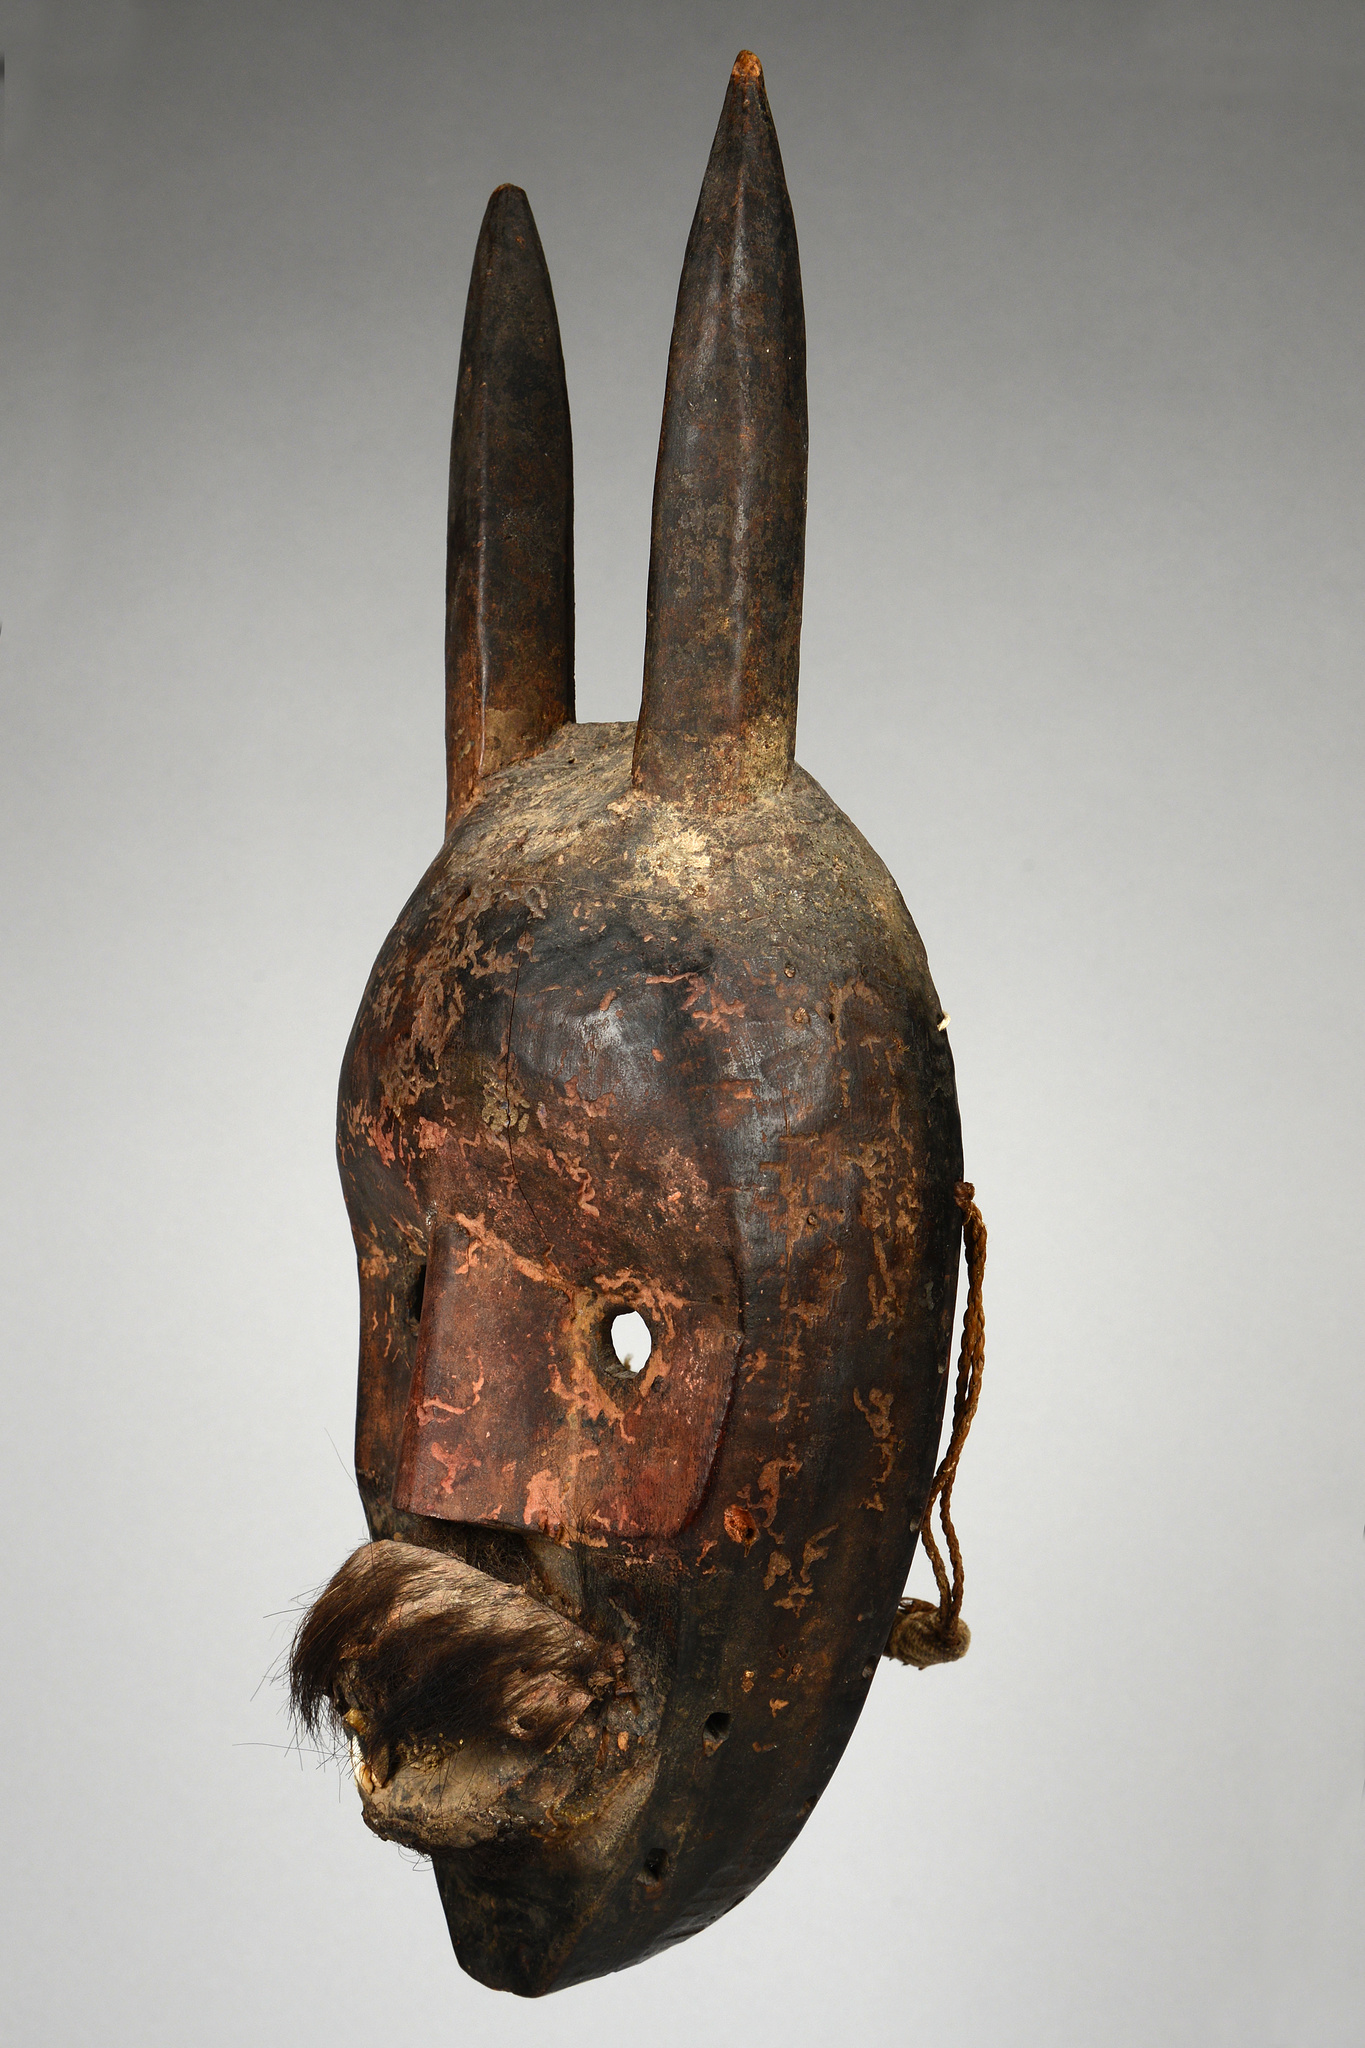 Anthropo-/zoomorphic mask with horns